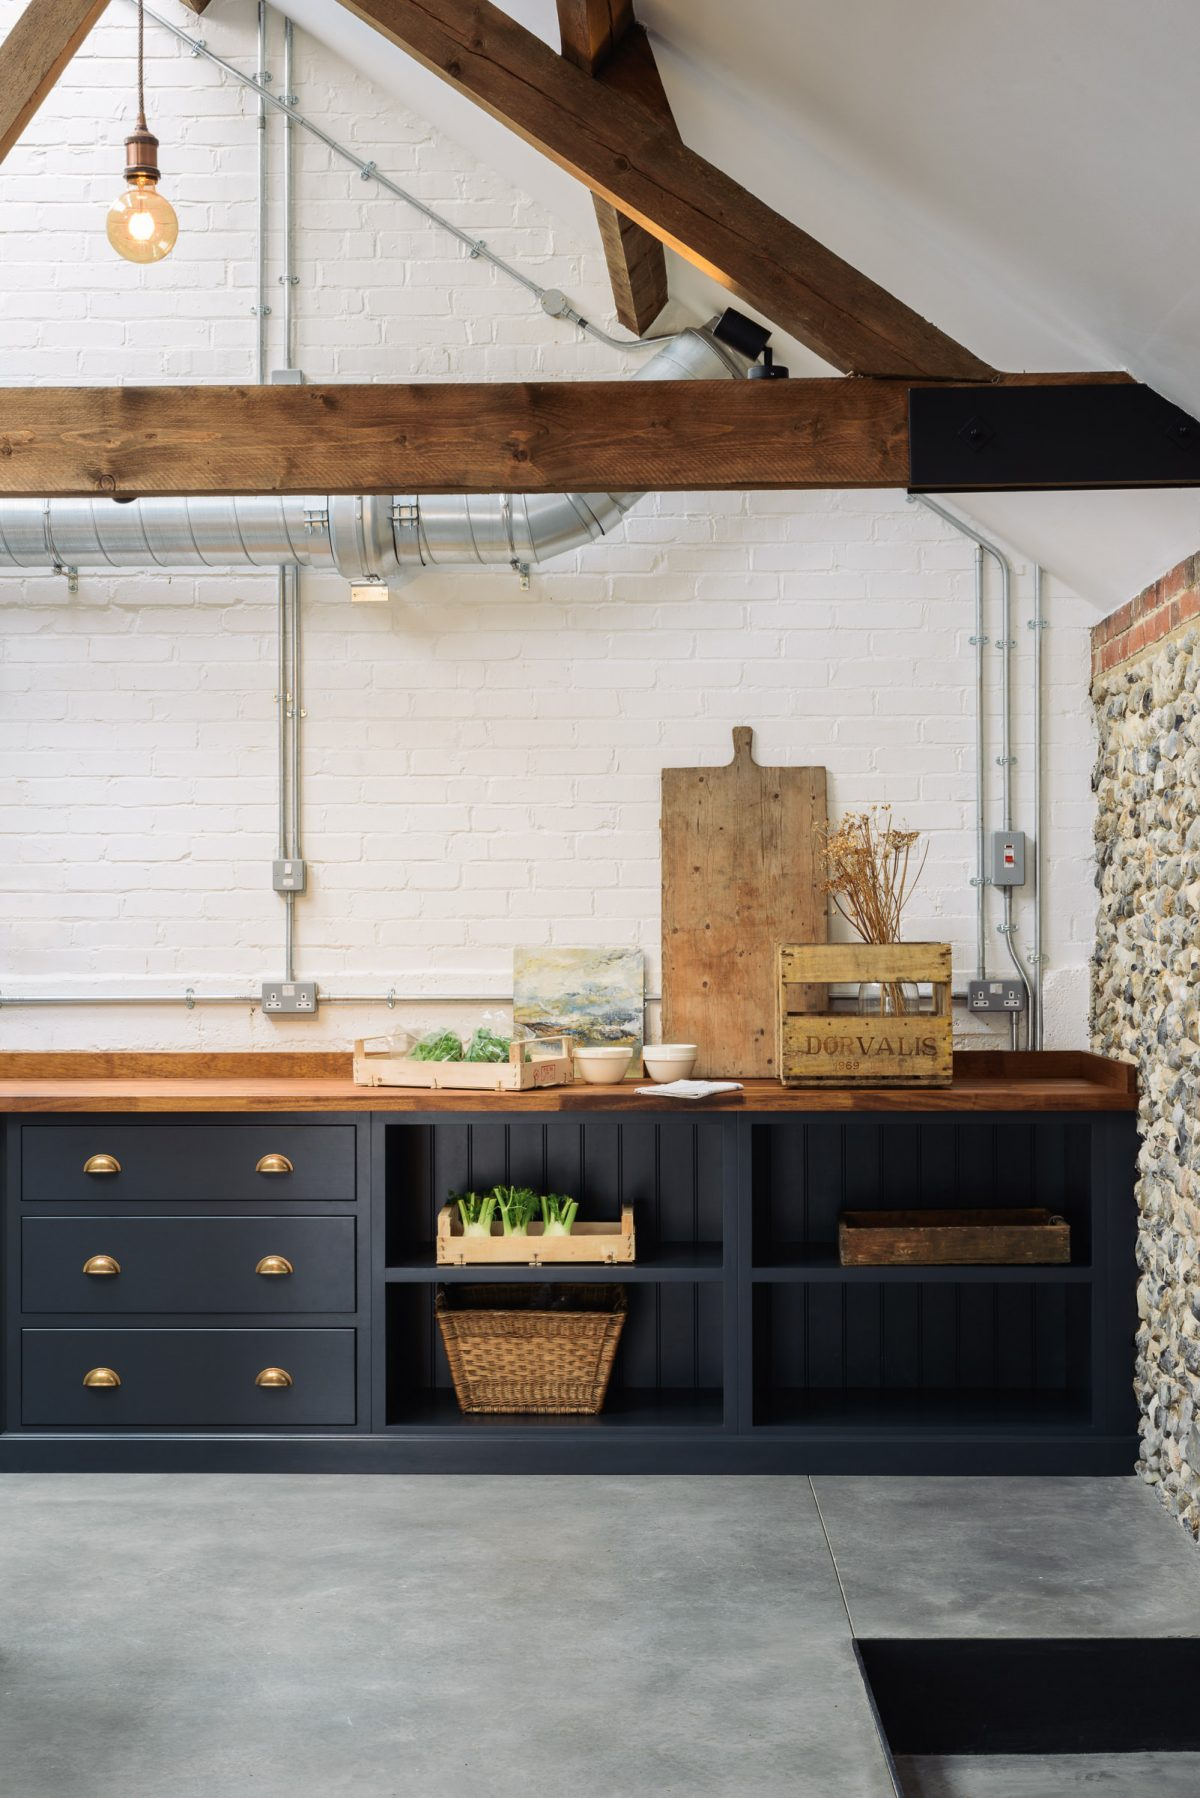 Polished concrete floors are beautifully softened by warm iroko worktops and original wooden beams.